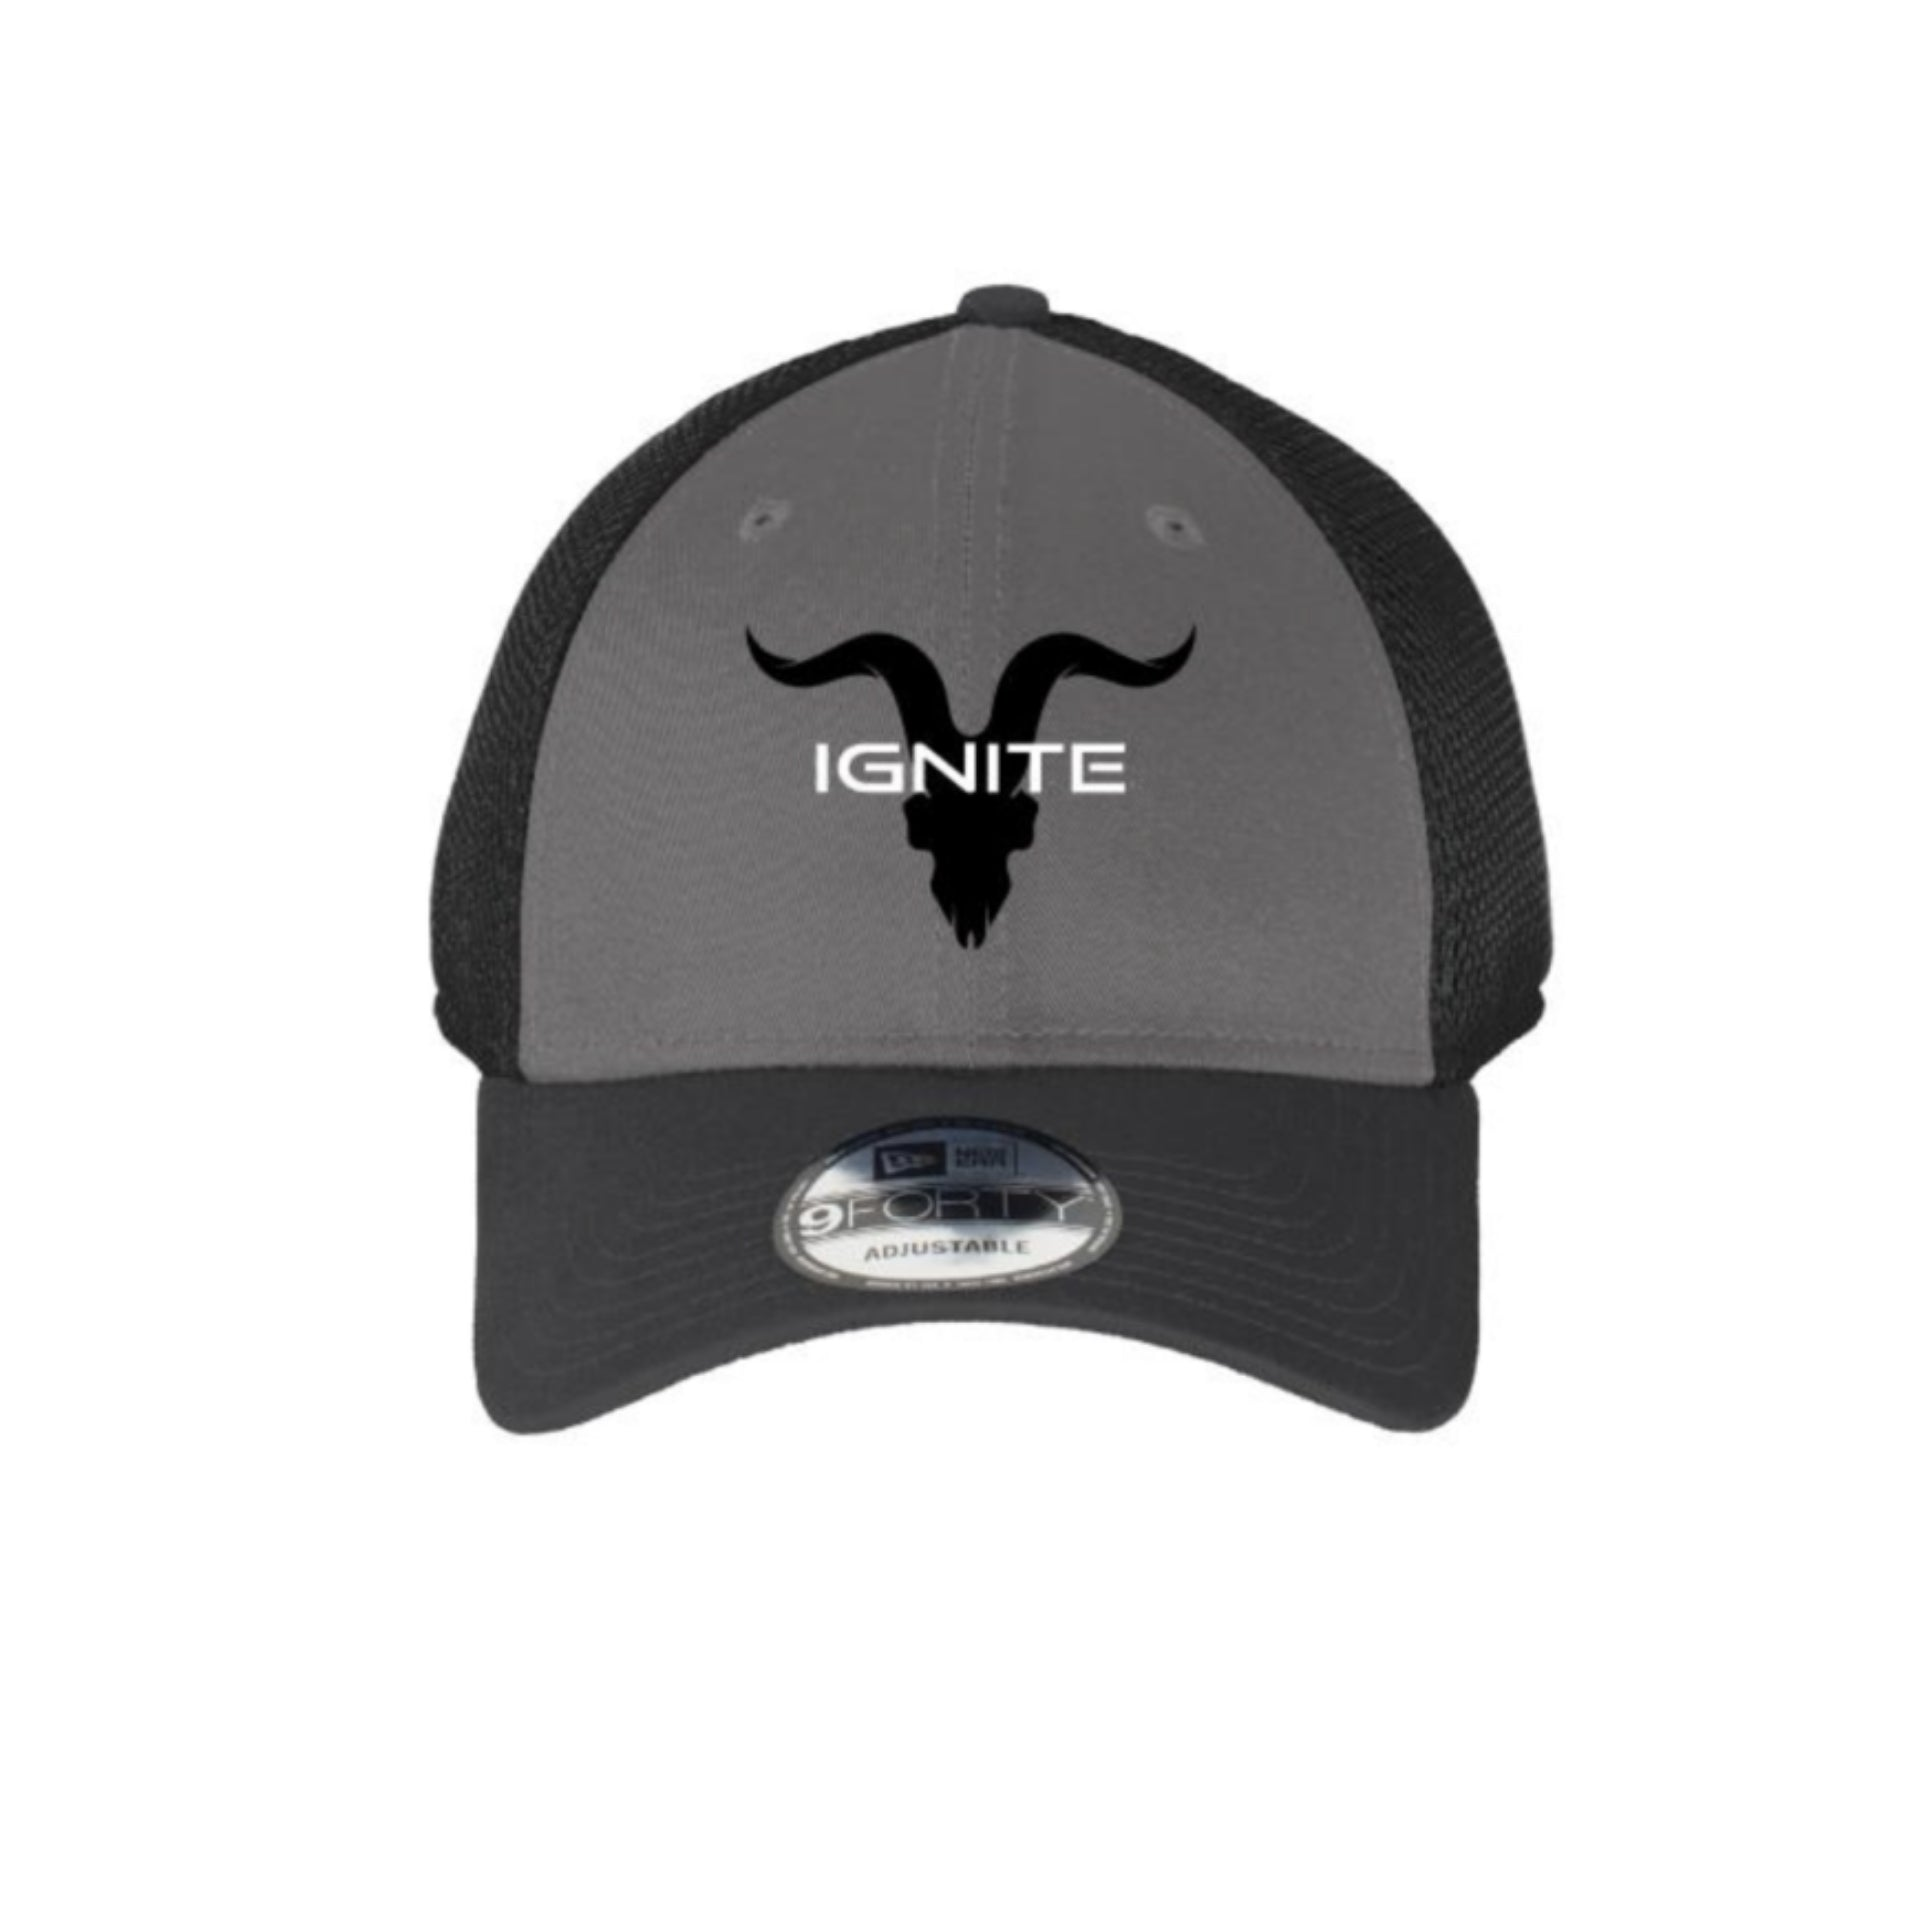 Ignite Premium Collection Two-Tone Mesh Trucker Hat